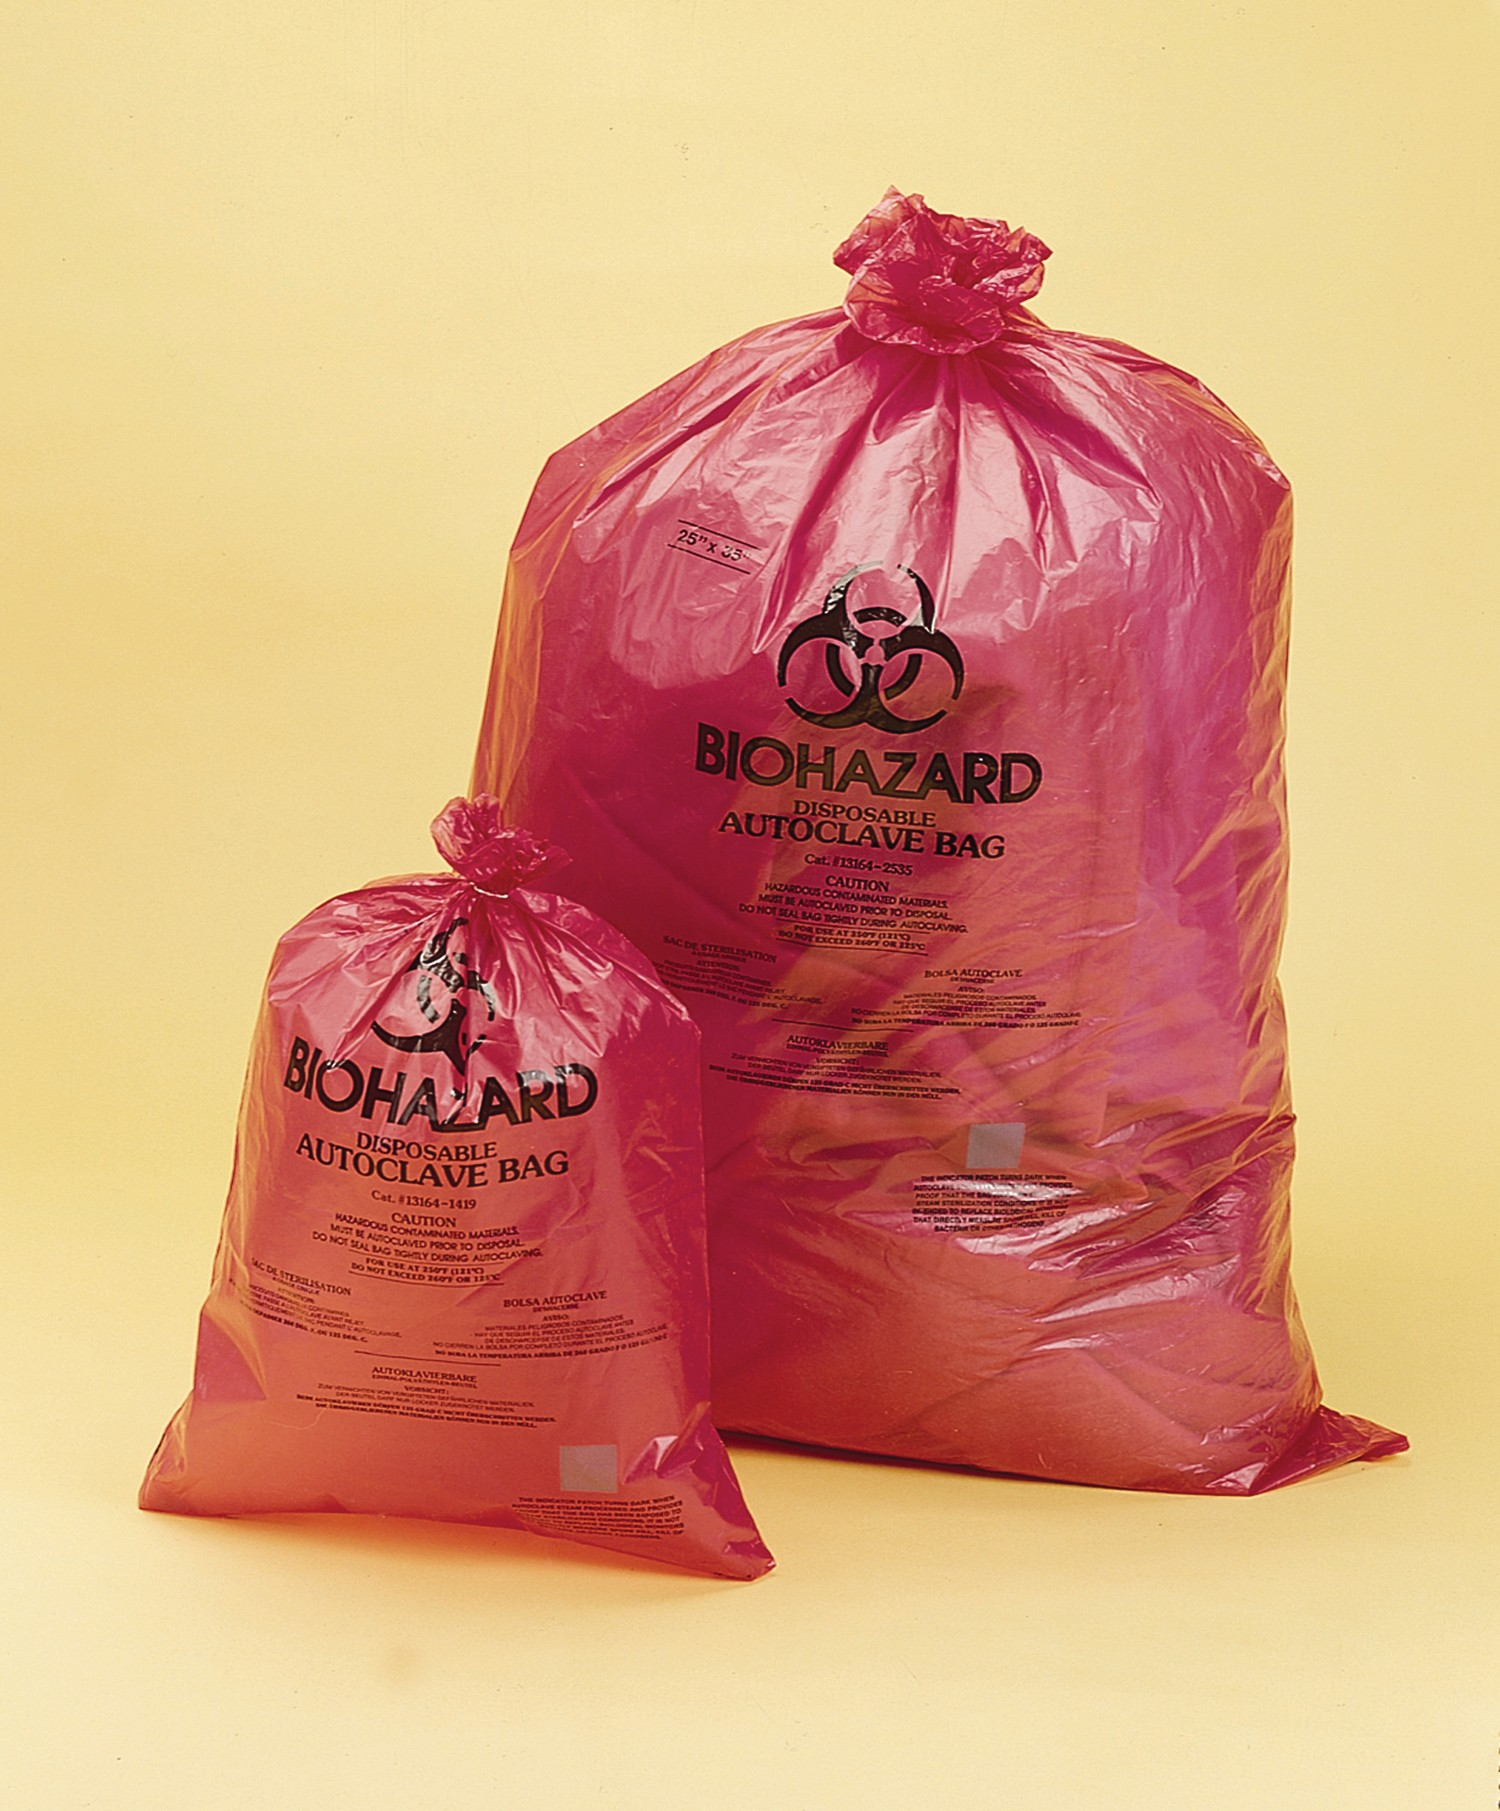 SP Bel-Art Red Biohazard Disposal Bags with Warning Label/Sterilization Indicator; 1.5mil Thick, 13-20 Gallon Capacity, Polypropylene (Pack of 200)